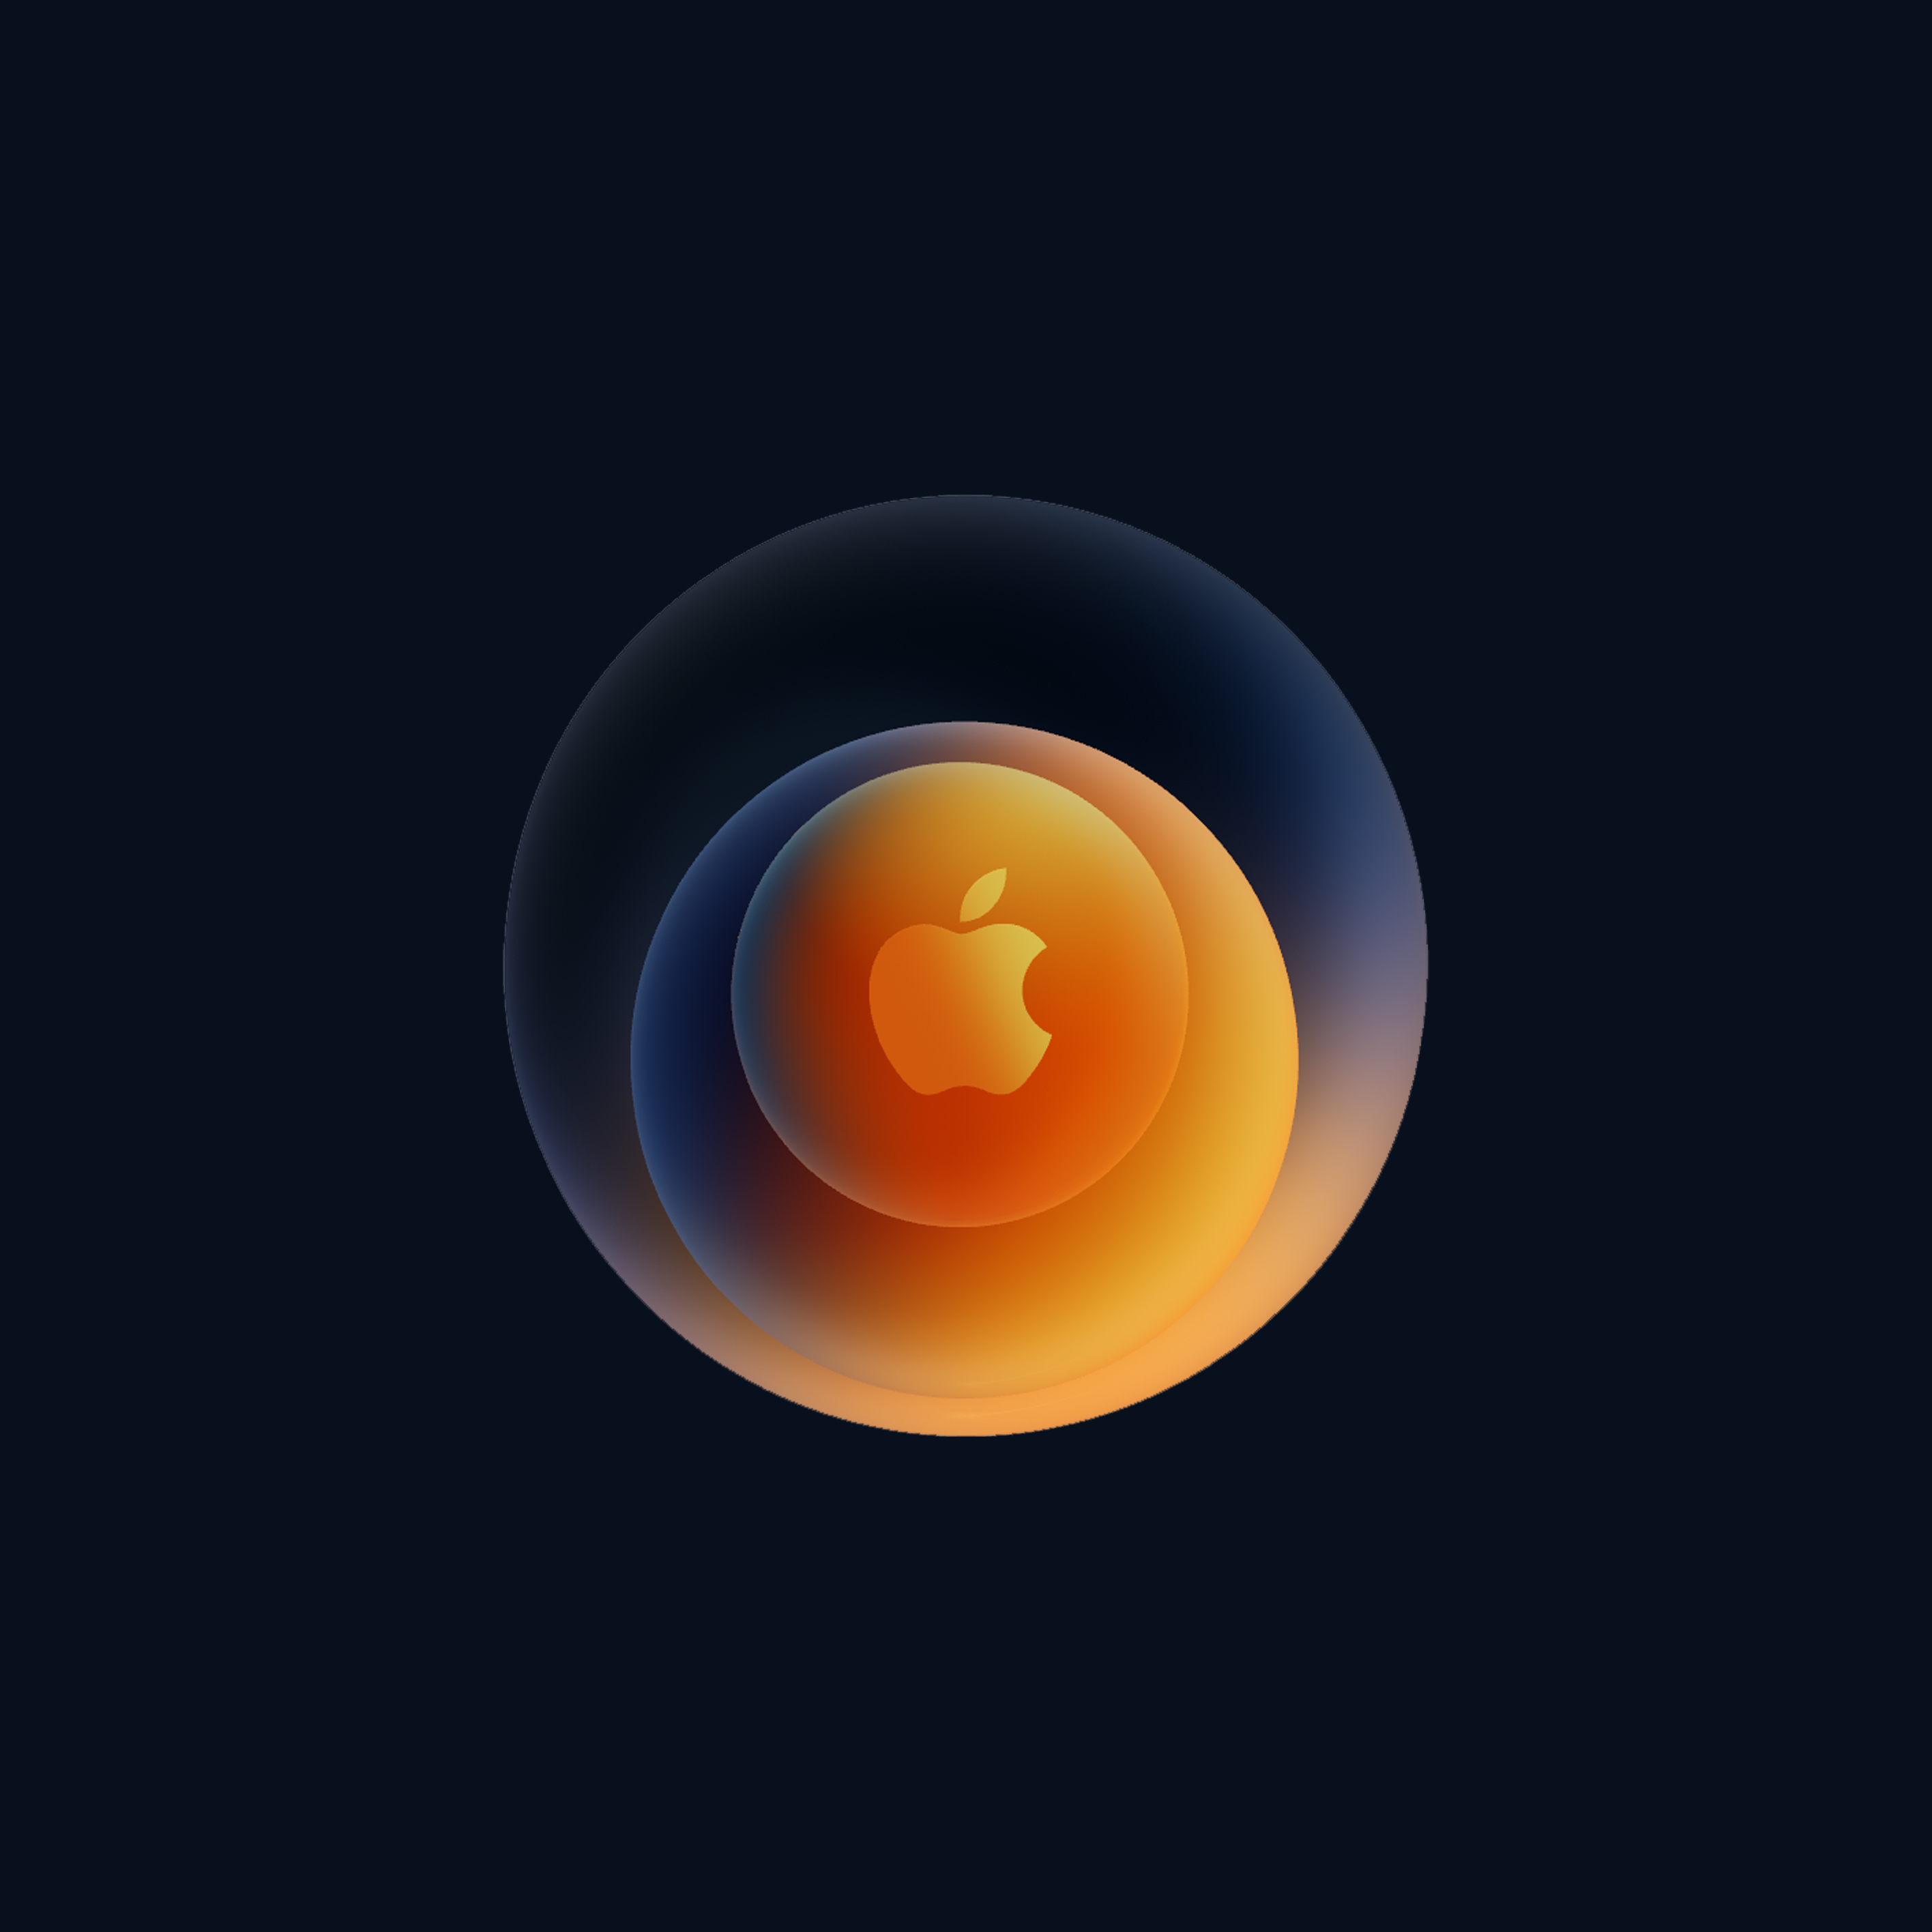 Hi Speed wallpapers Apple Event October 2020 iDownloadBlog ispazio iPad